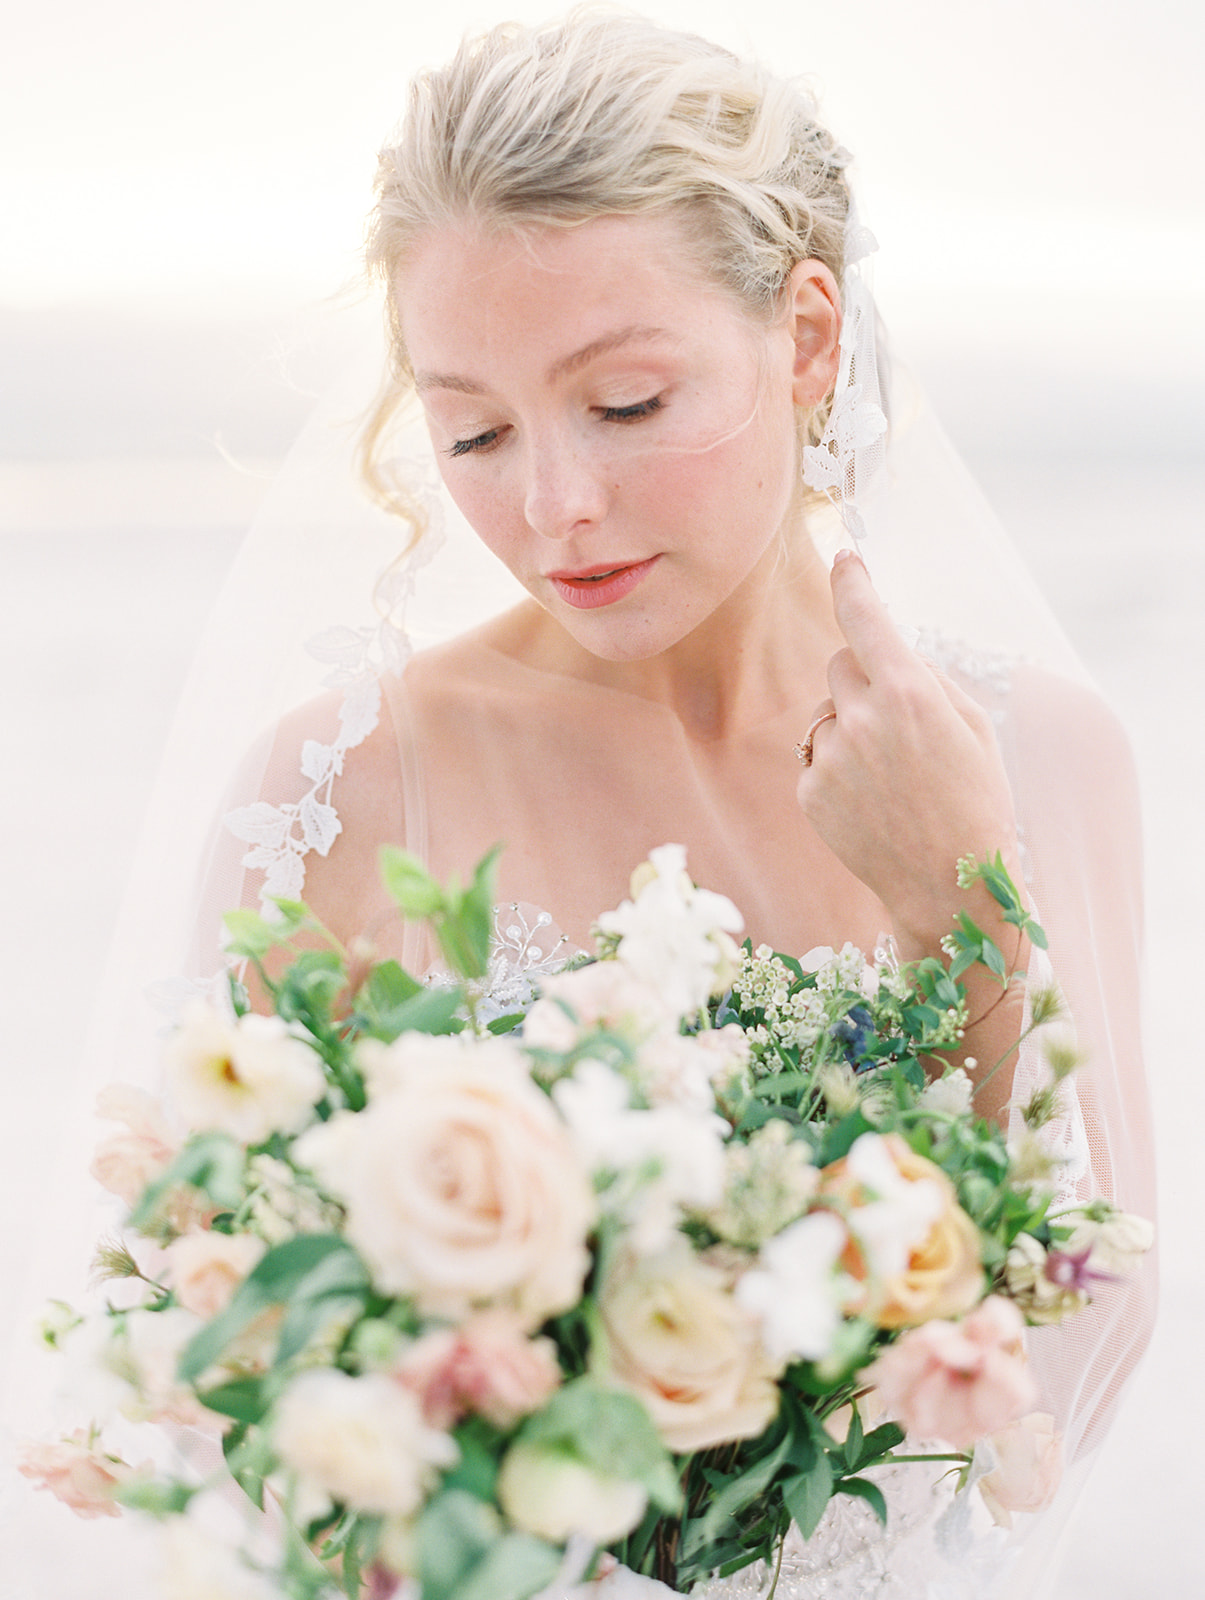 ETHEREAL & TIMELESS WEDDING - IN SOUTHERN CALIFORNIA